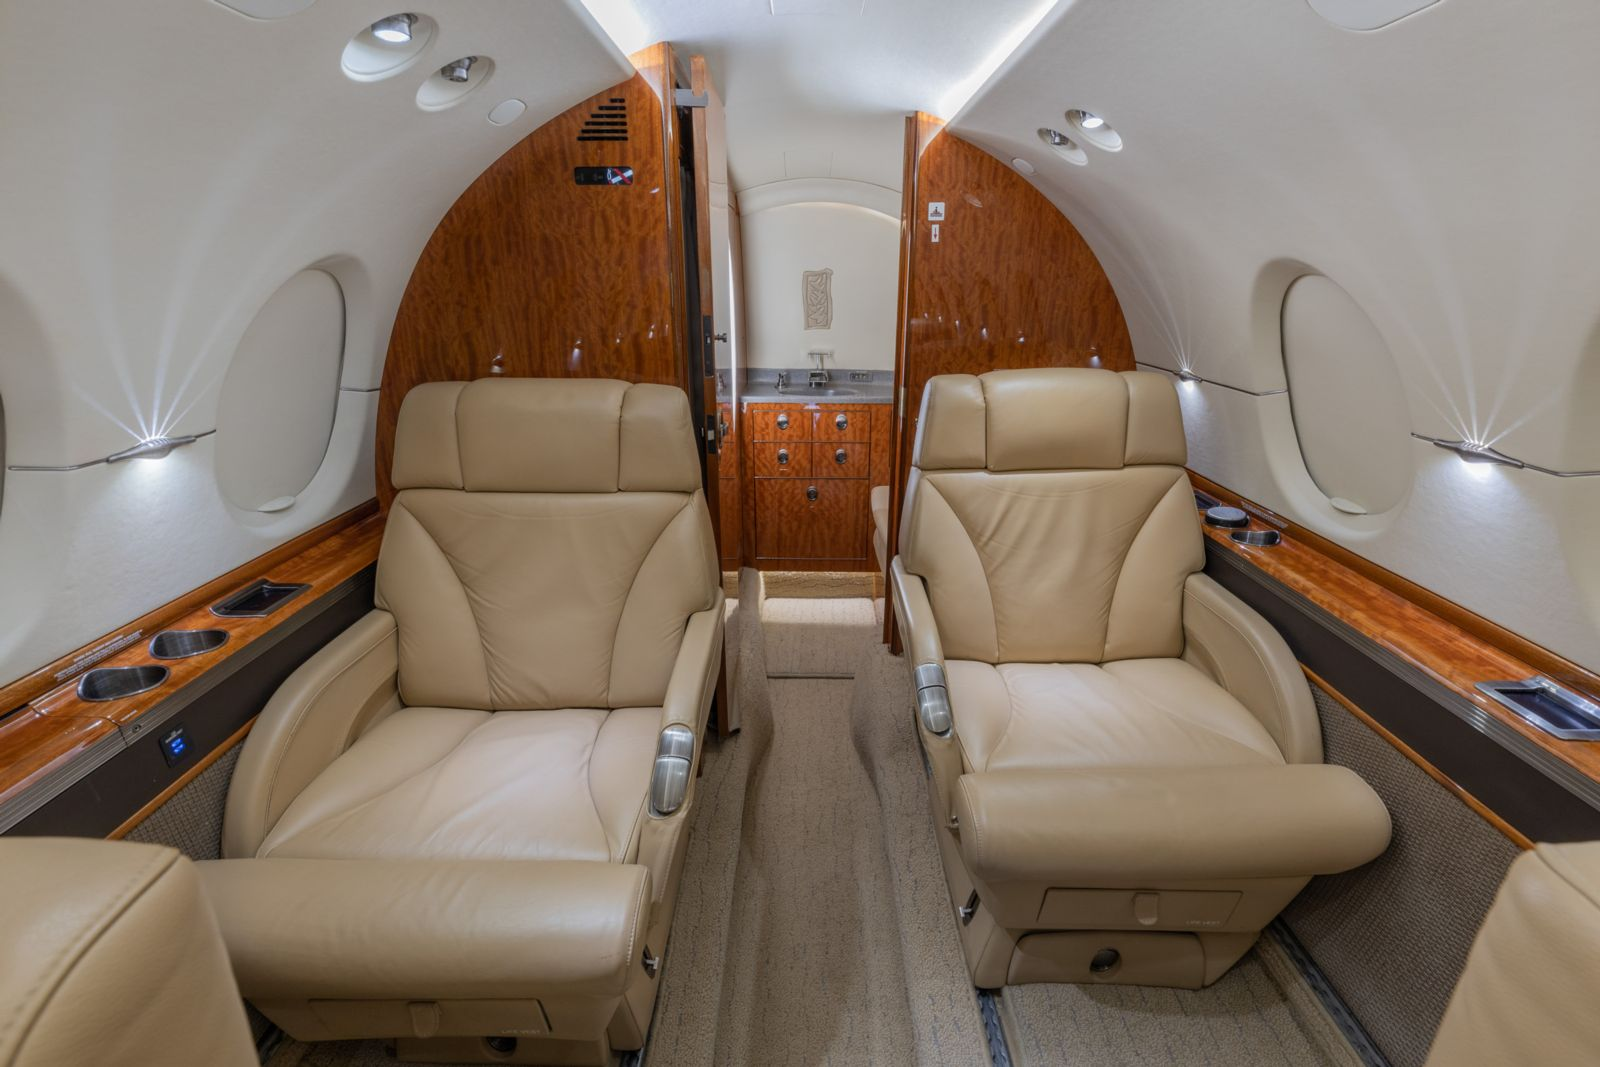 Hawker/Textron 800XPi  S/N 258729 for sale | gallery image: /userfiles/images/Hawker800XPi_sn729/n707ks-webres-10.jpg